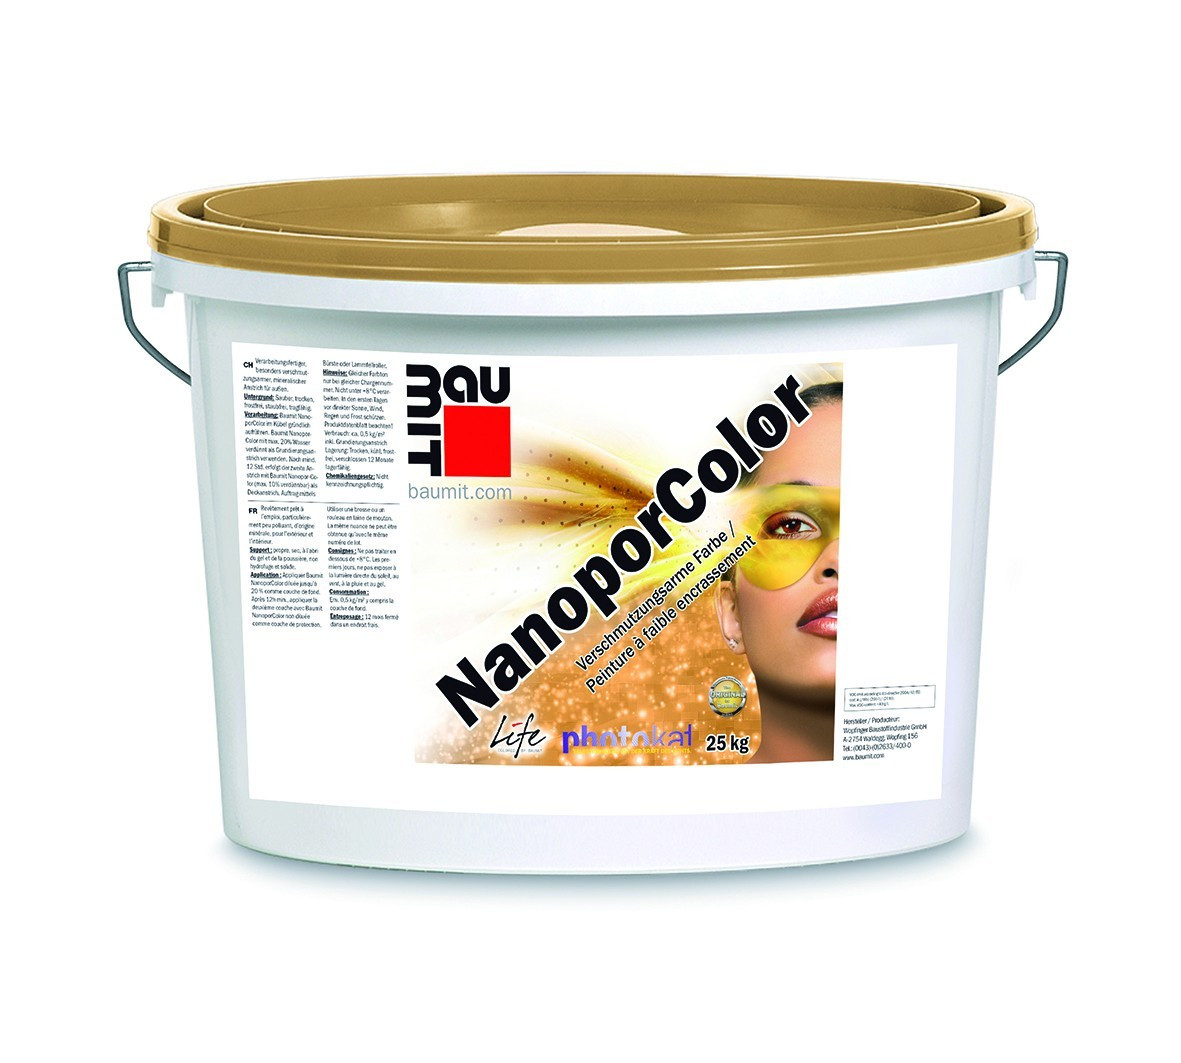 Baumit NanoPor Colour Paint, Self Cleaning